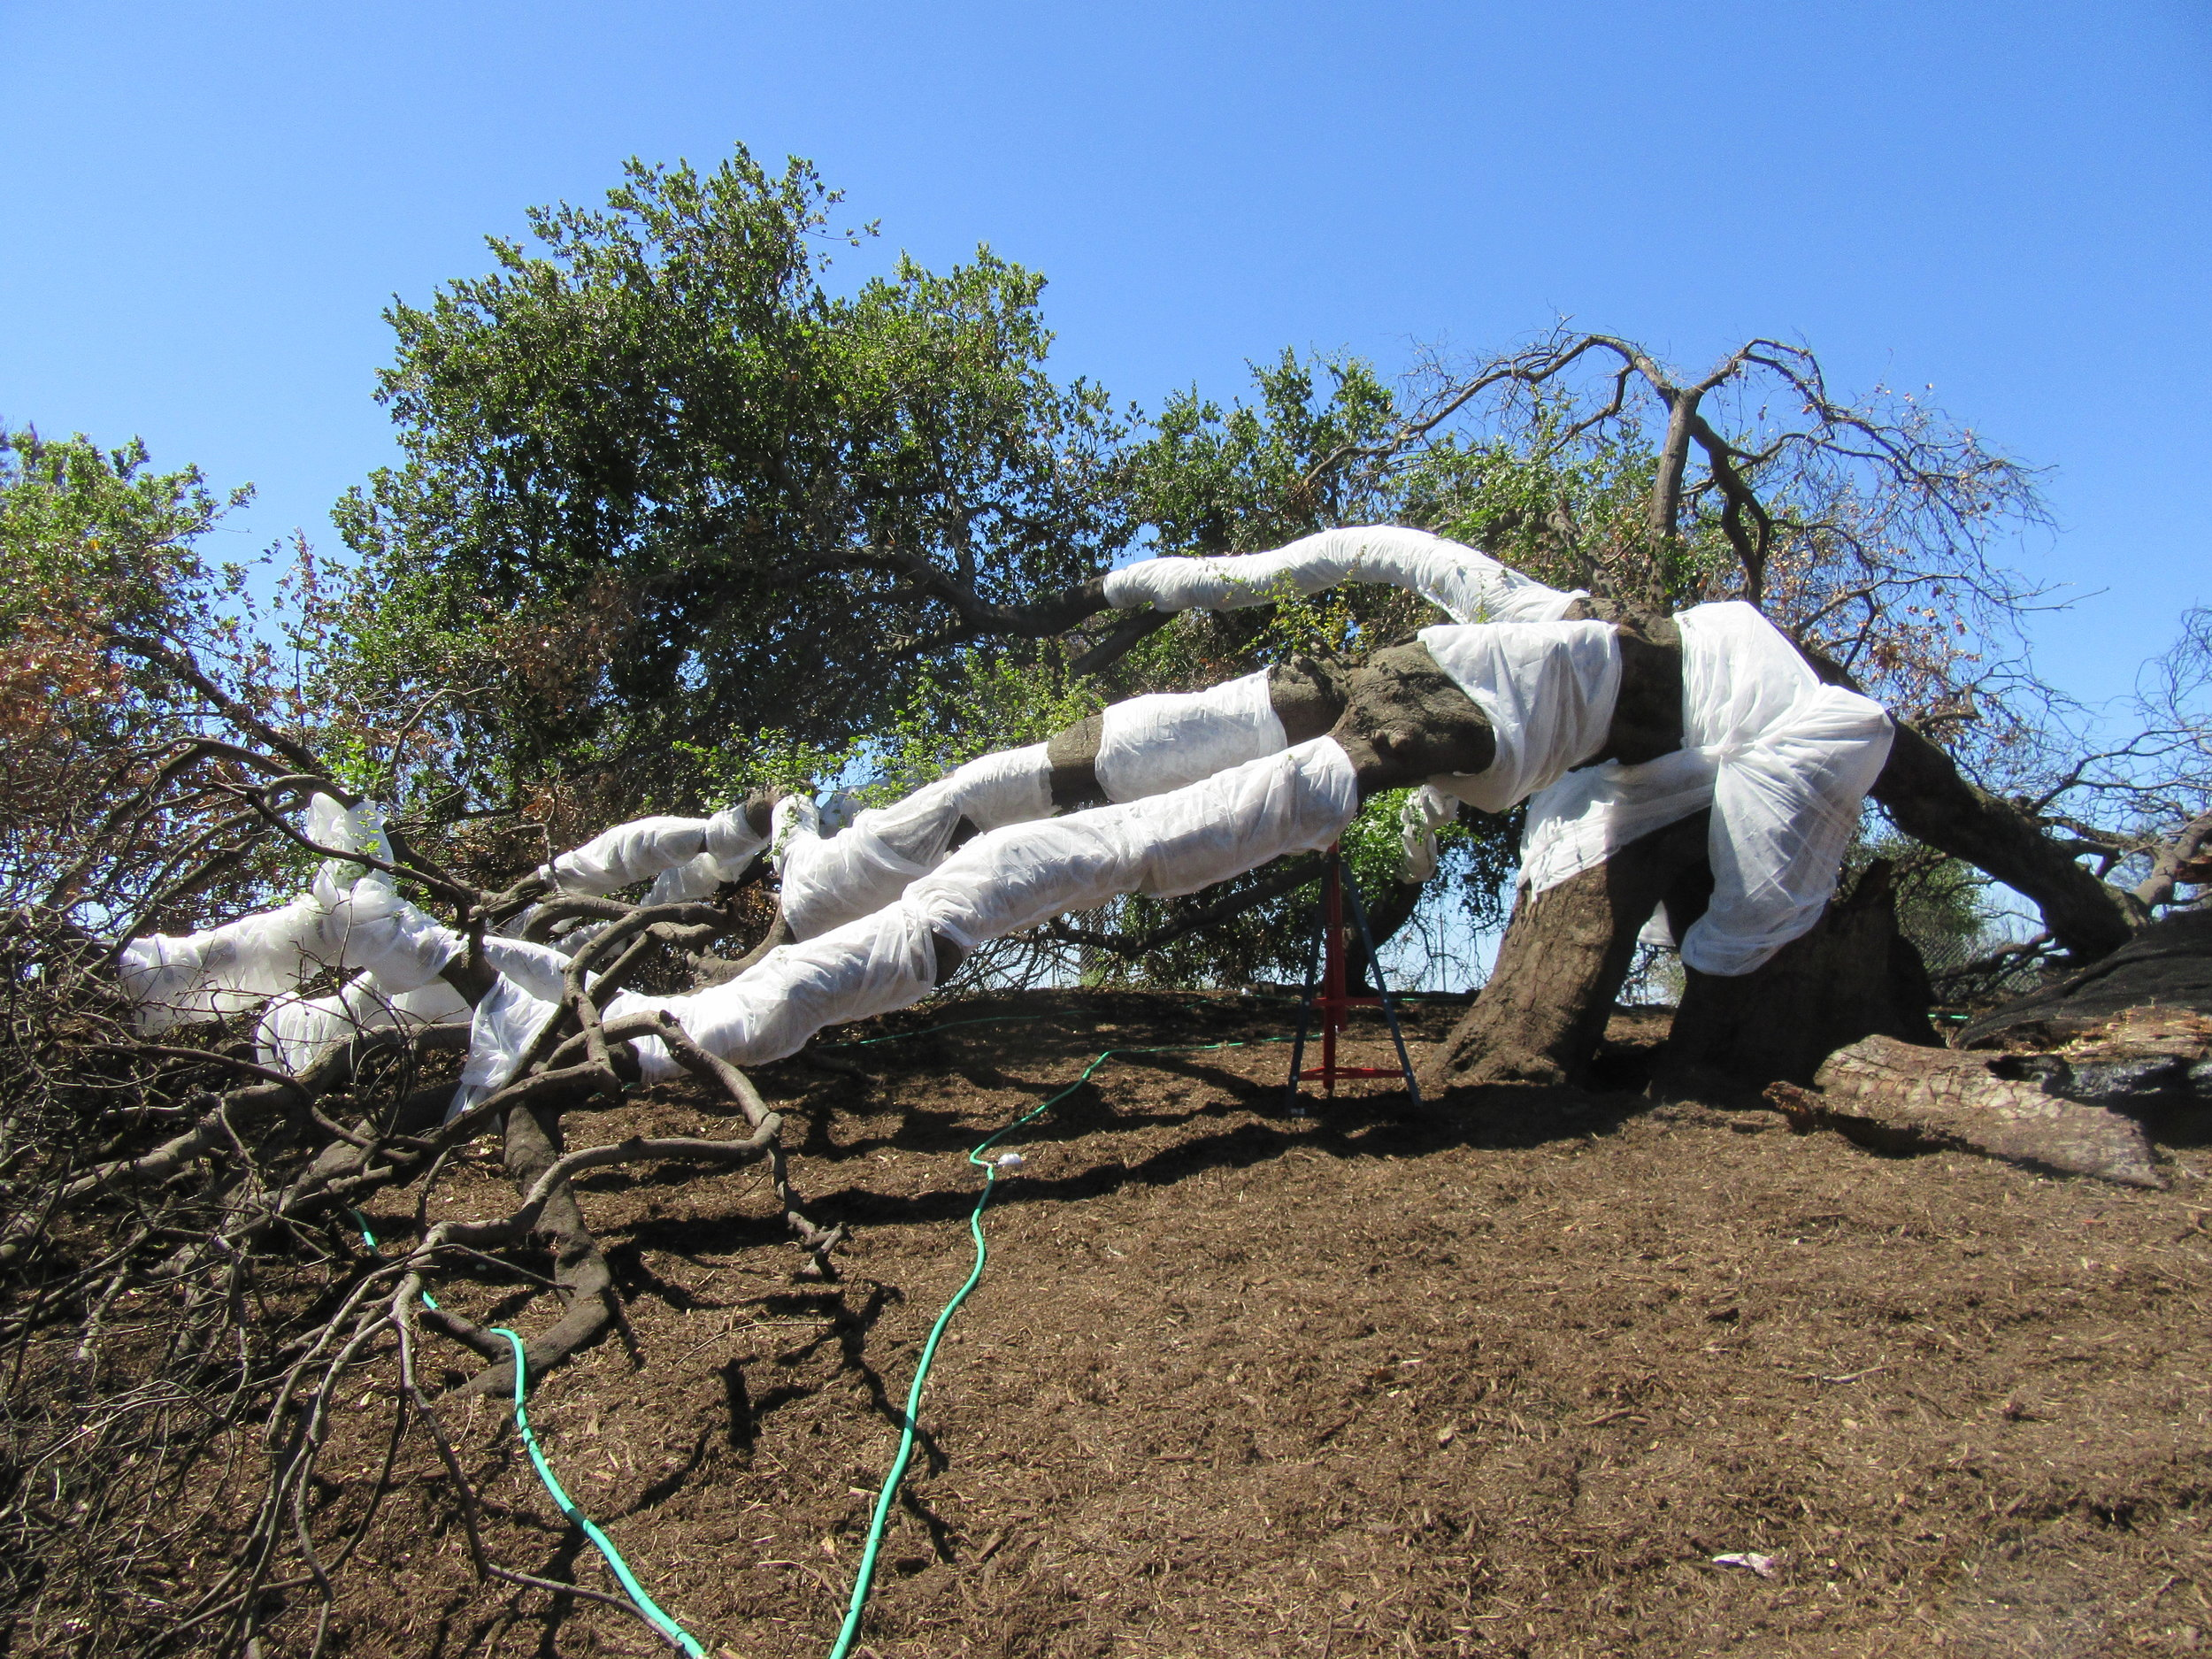 BABA'S TREE at Meher Mount wrapped for sunburn protection, a limb propped for support, and hoses with soaking nozzles - all in support of the recovery of Baba's Tree following the December 2017 Thomas Fire. (Photo: Margaret Magnus, April 22, 2018)